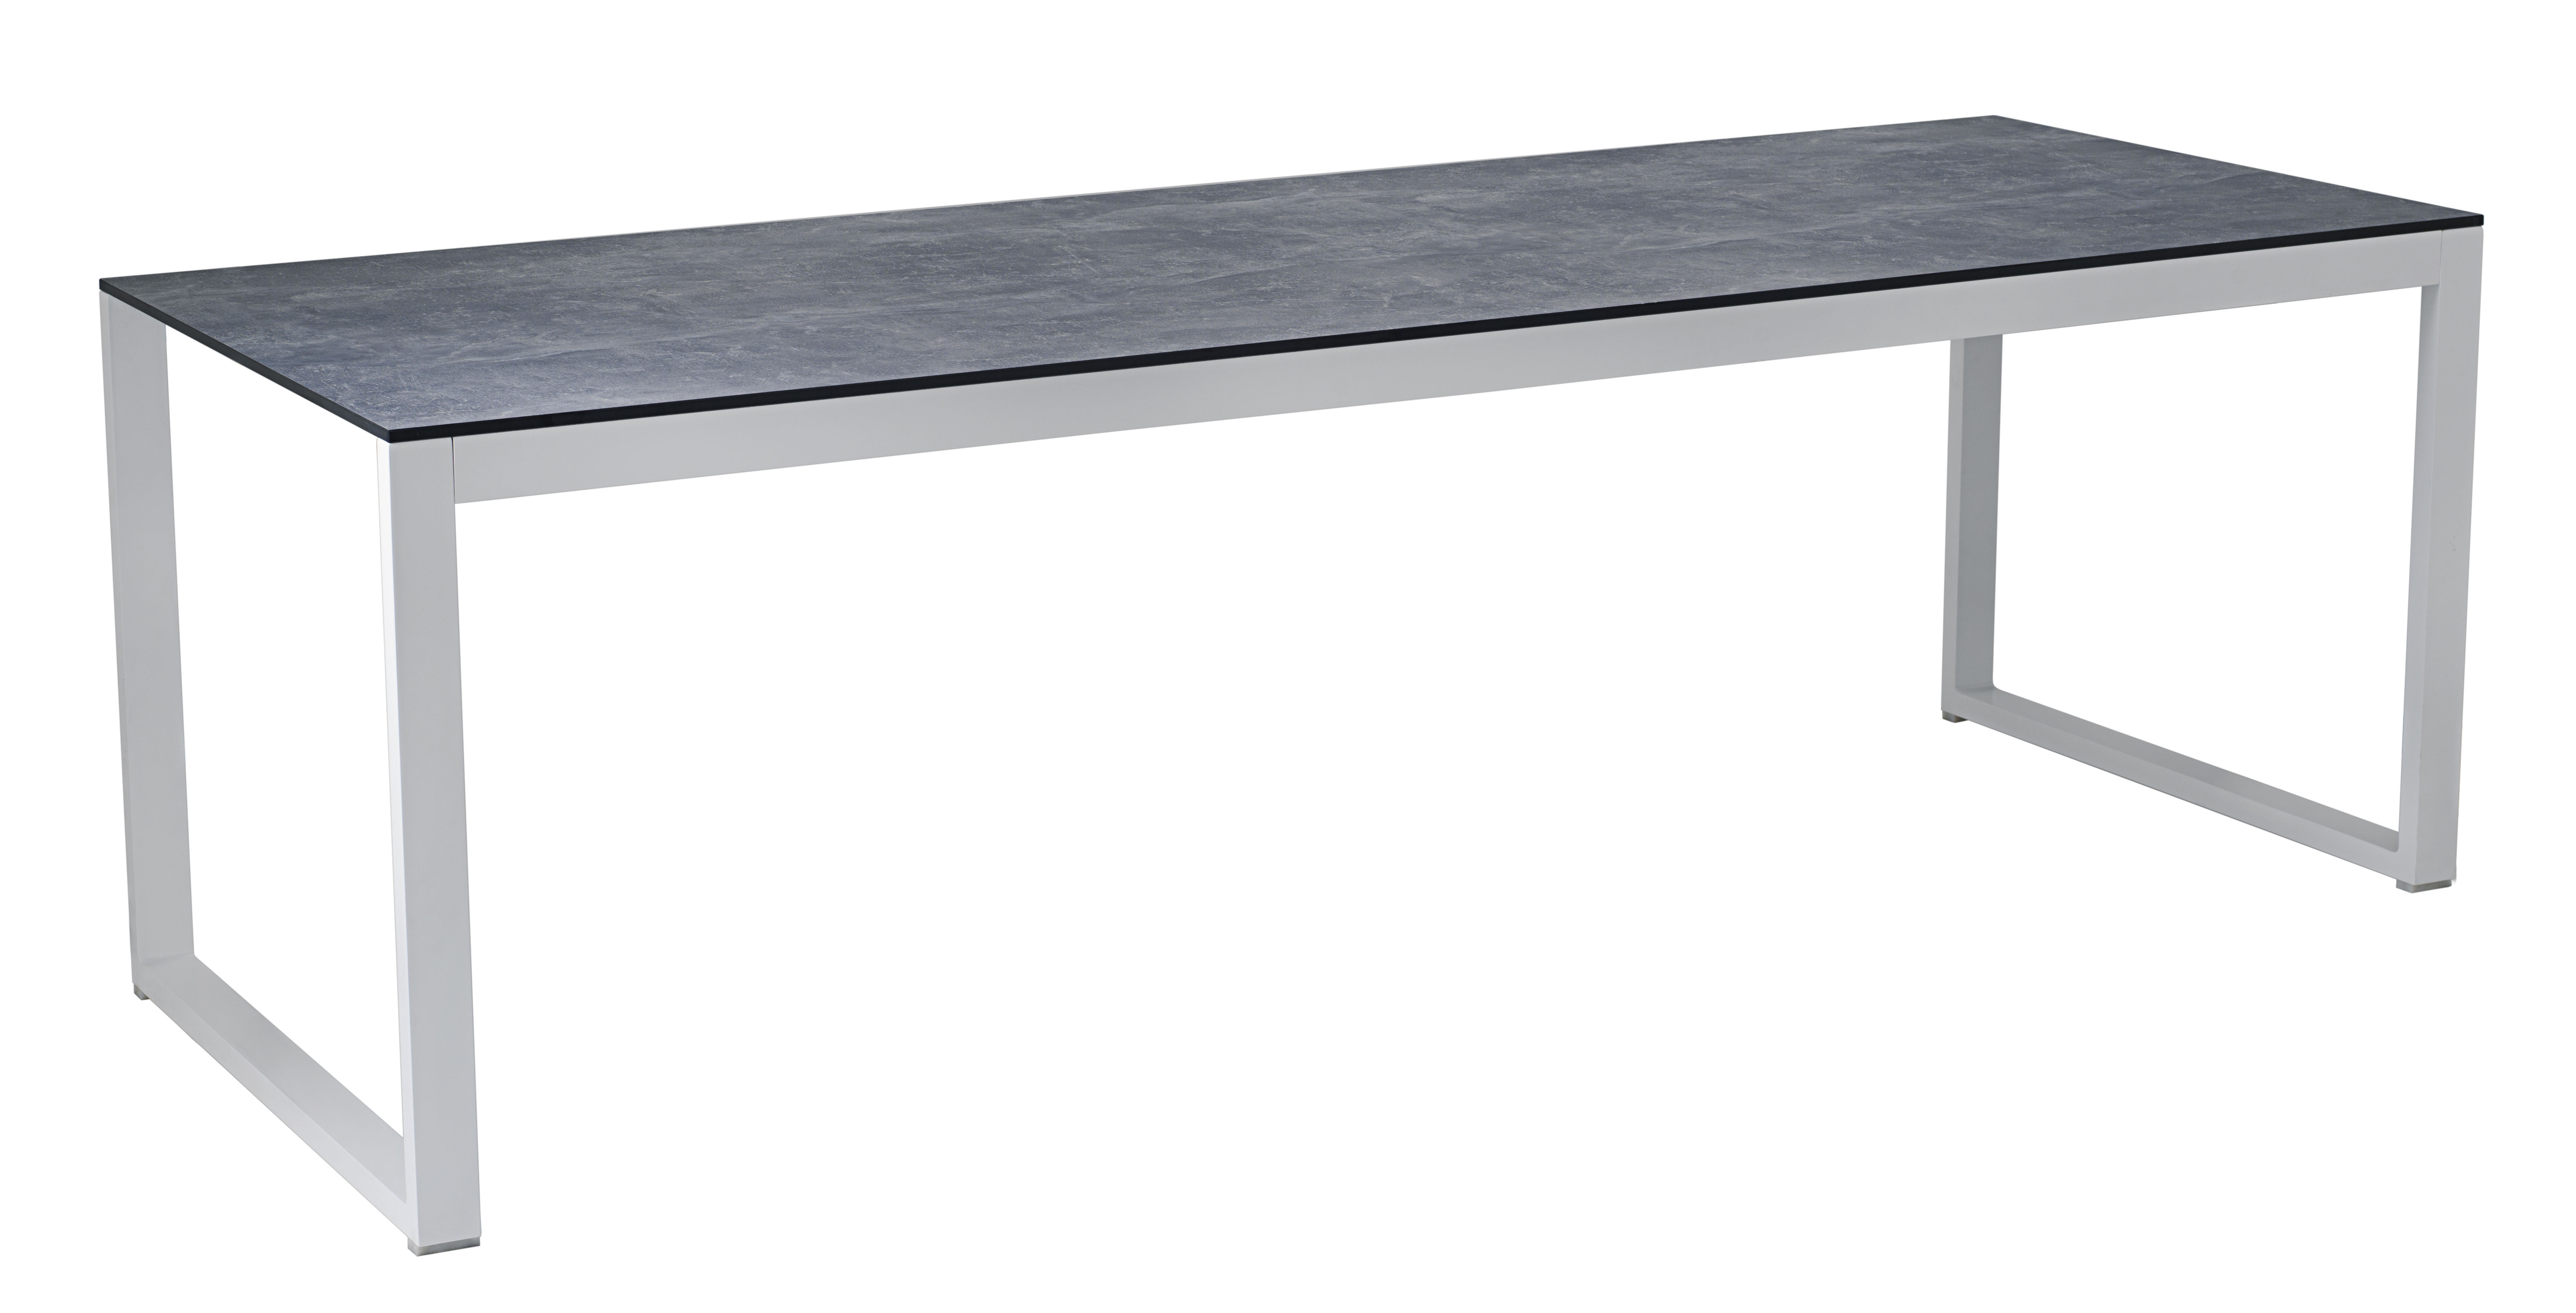 Table rectangulaire Perspective Vlaemynck - Gris | Made In Design